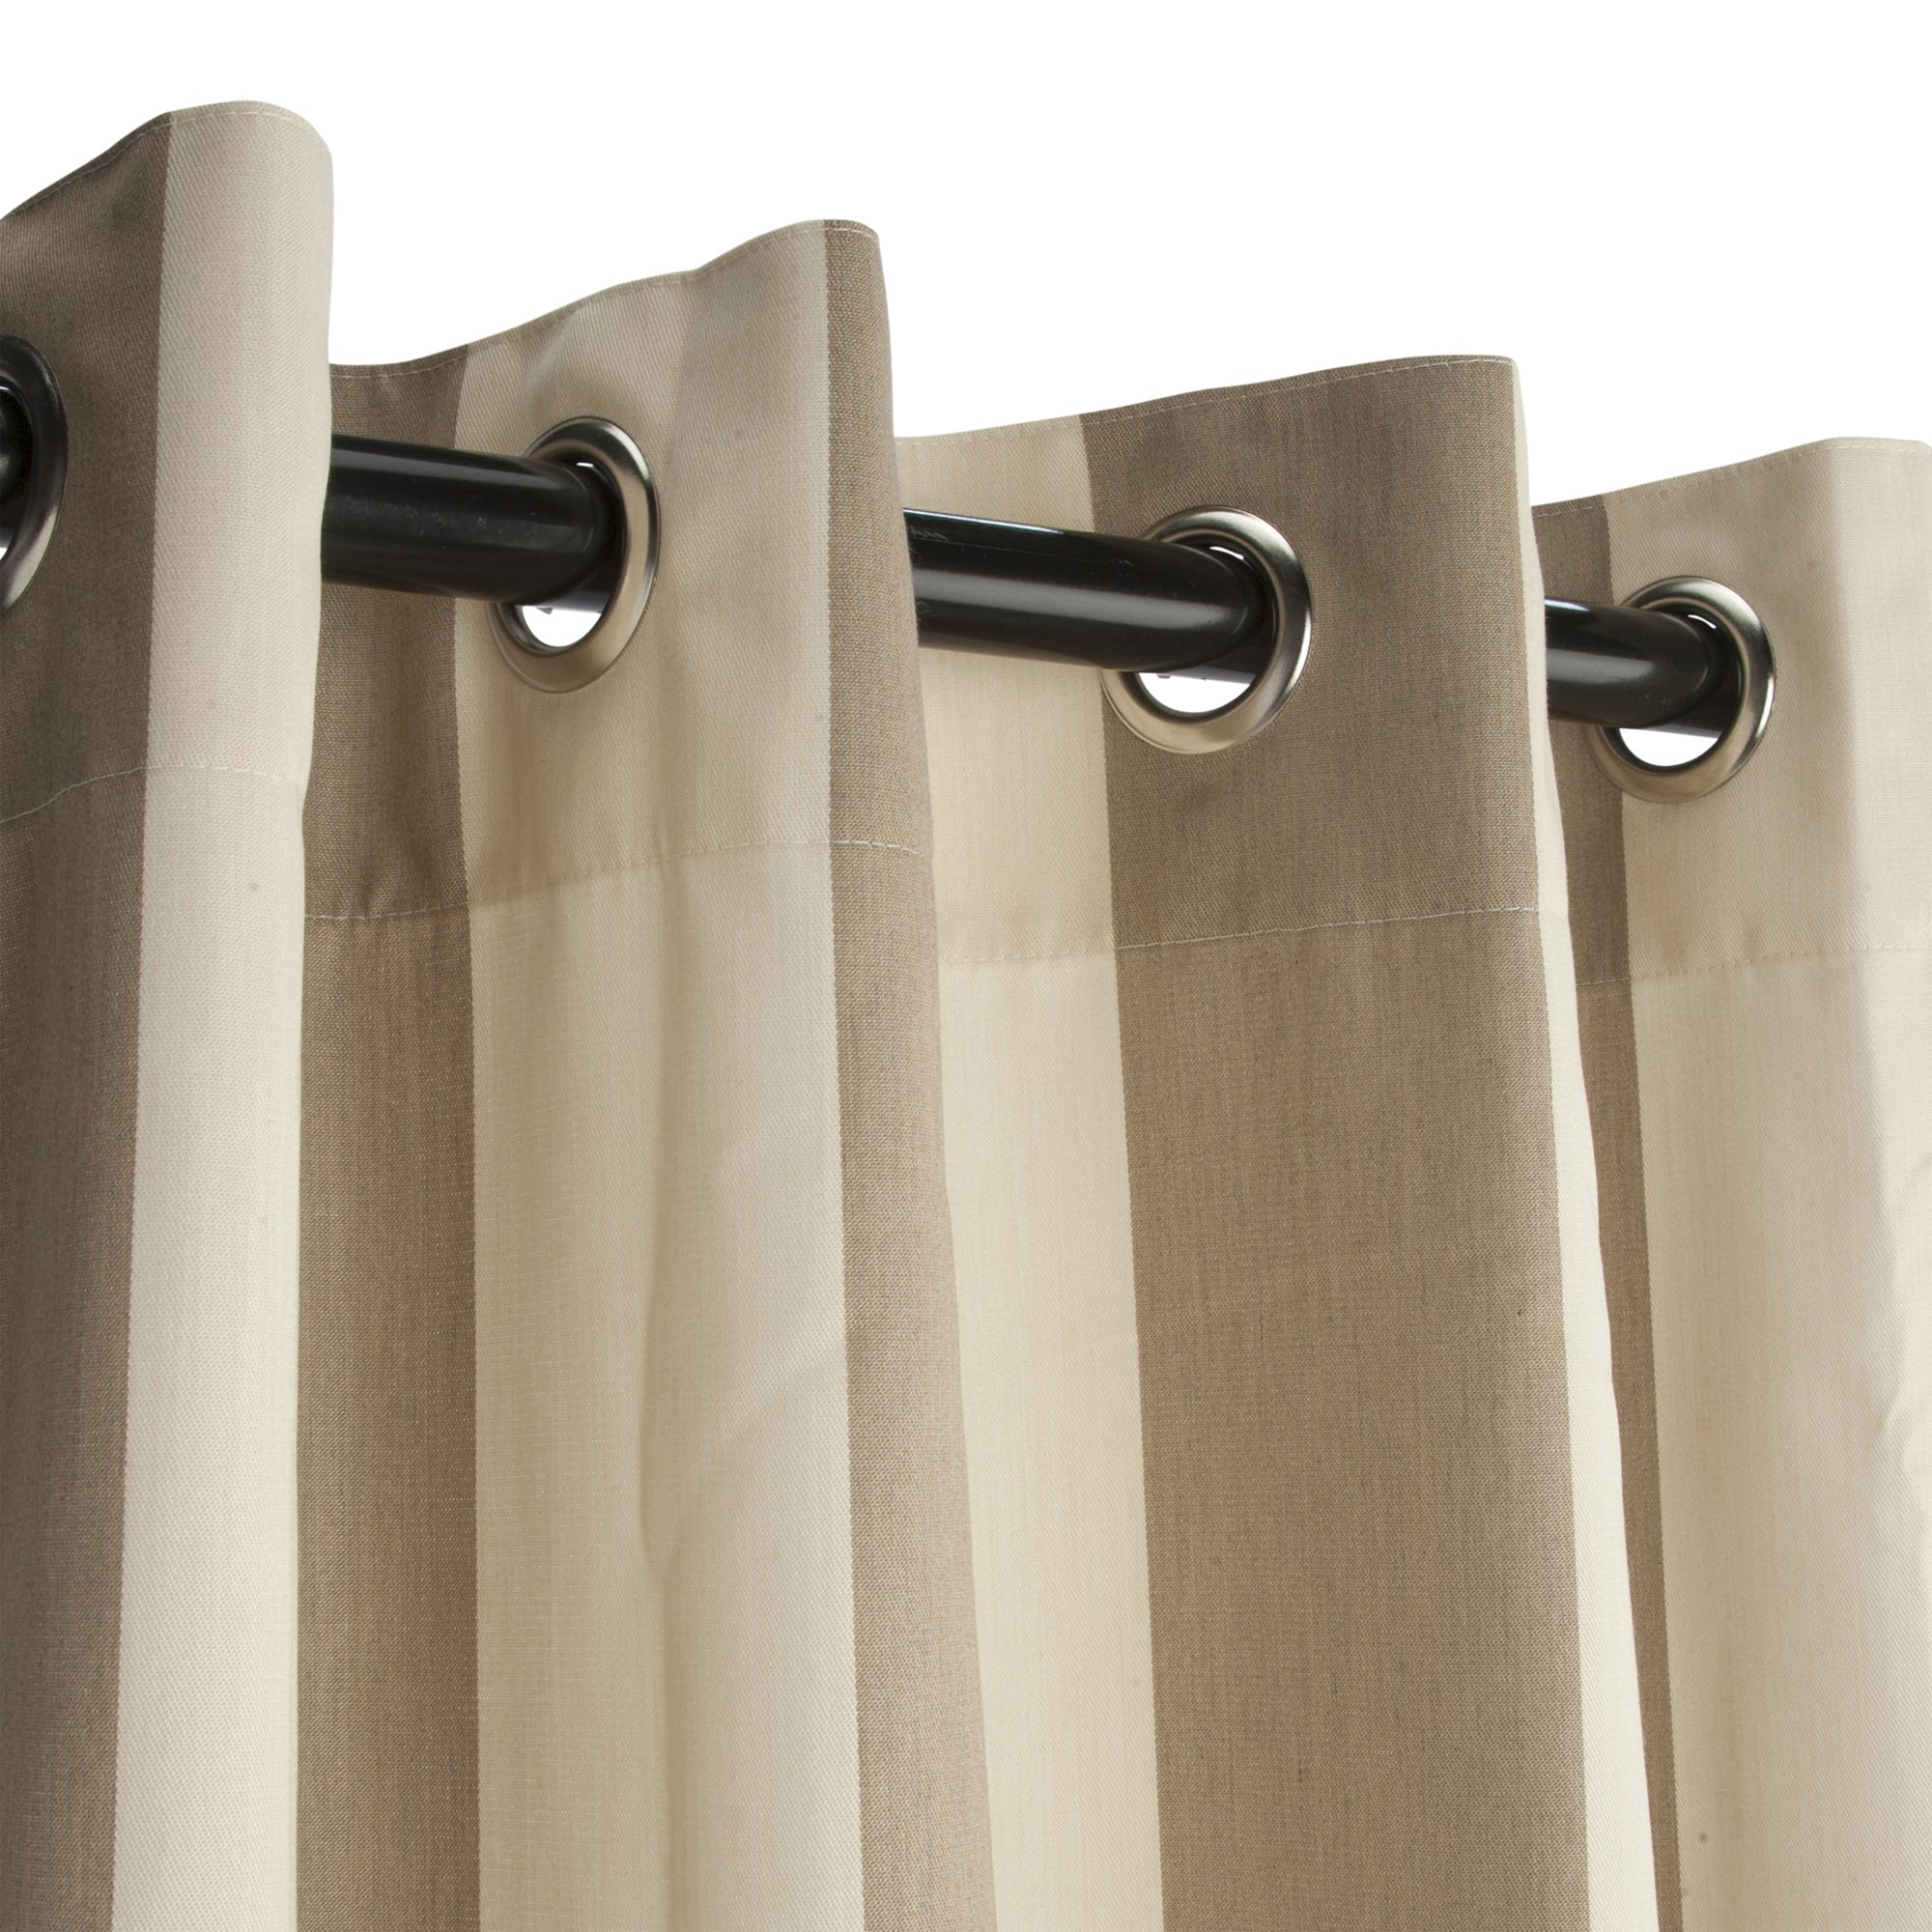 How To Build A Curtain Drain Blinds with Grommets